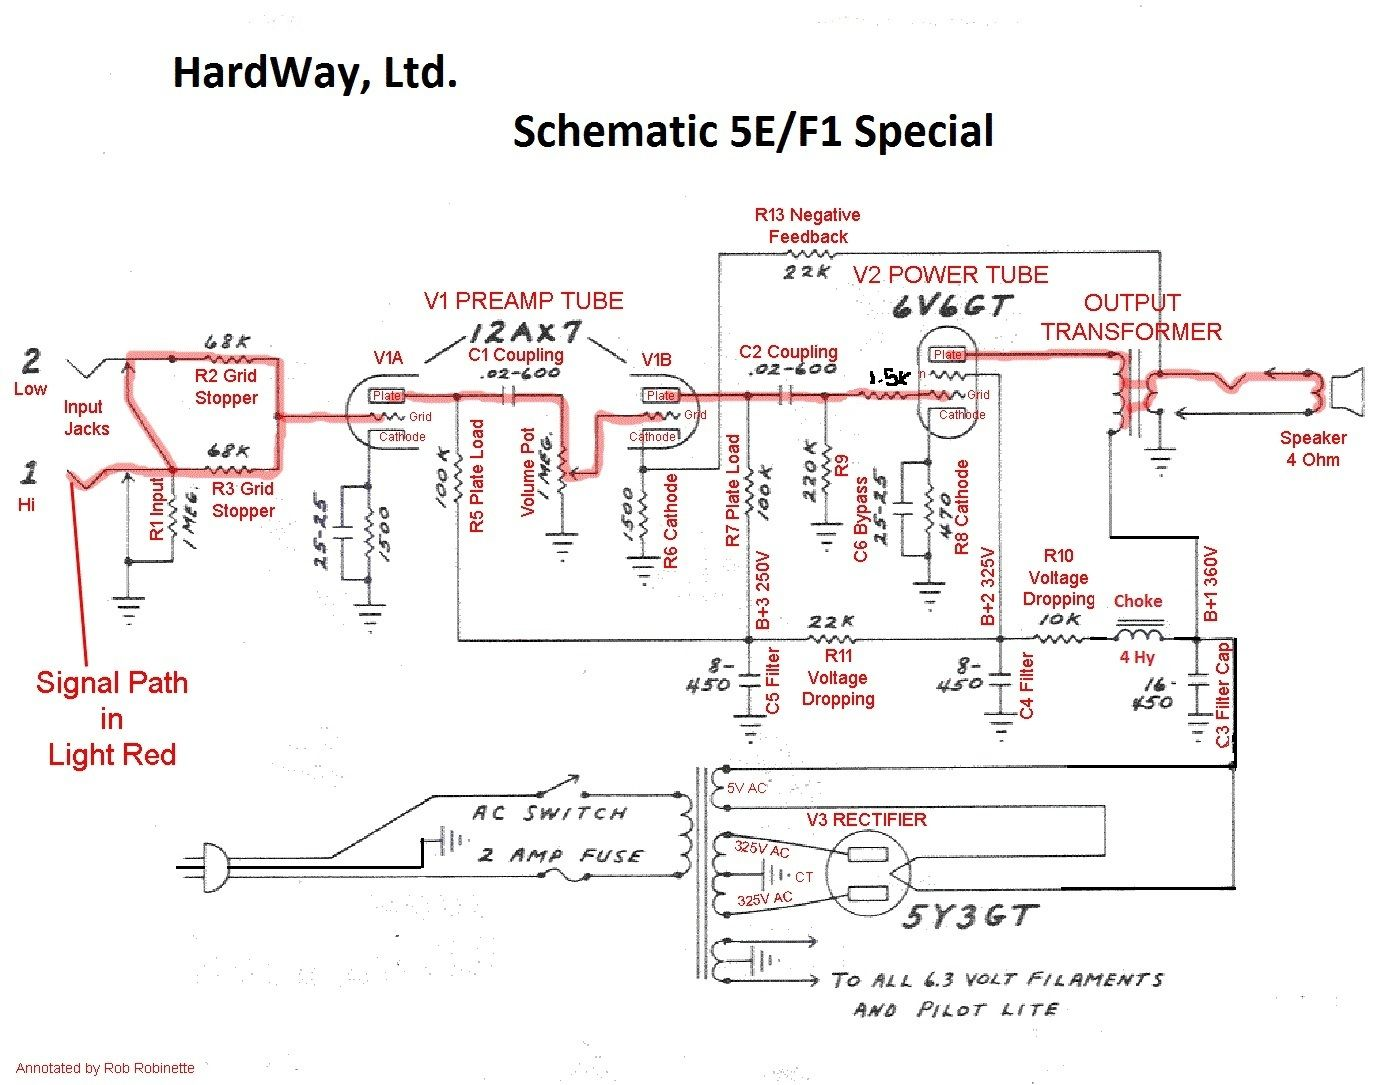 This Is The Schematic For The 5e  F1 Special Amp